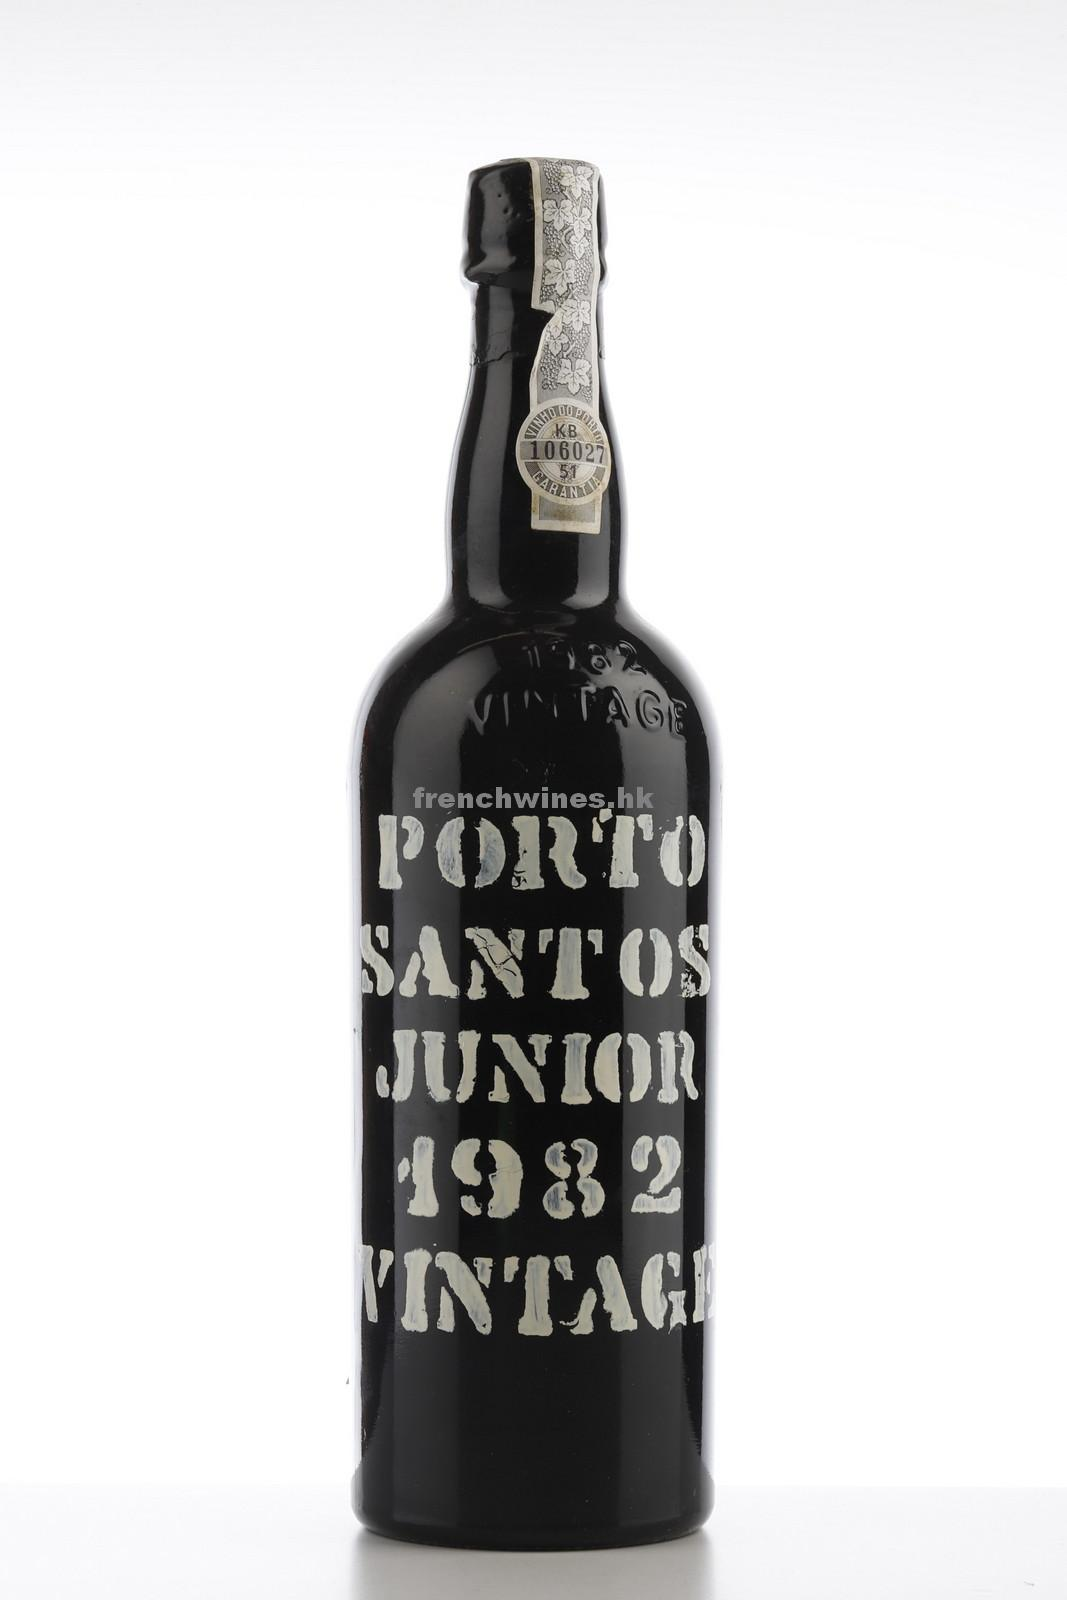 VINTAGE PORT SANTOS JUNIOR 1982